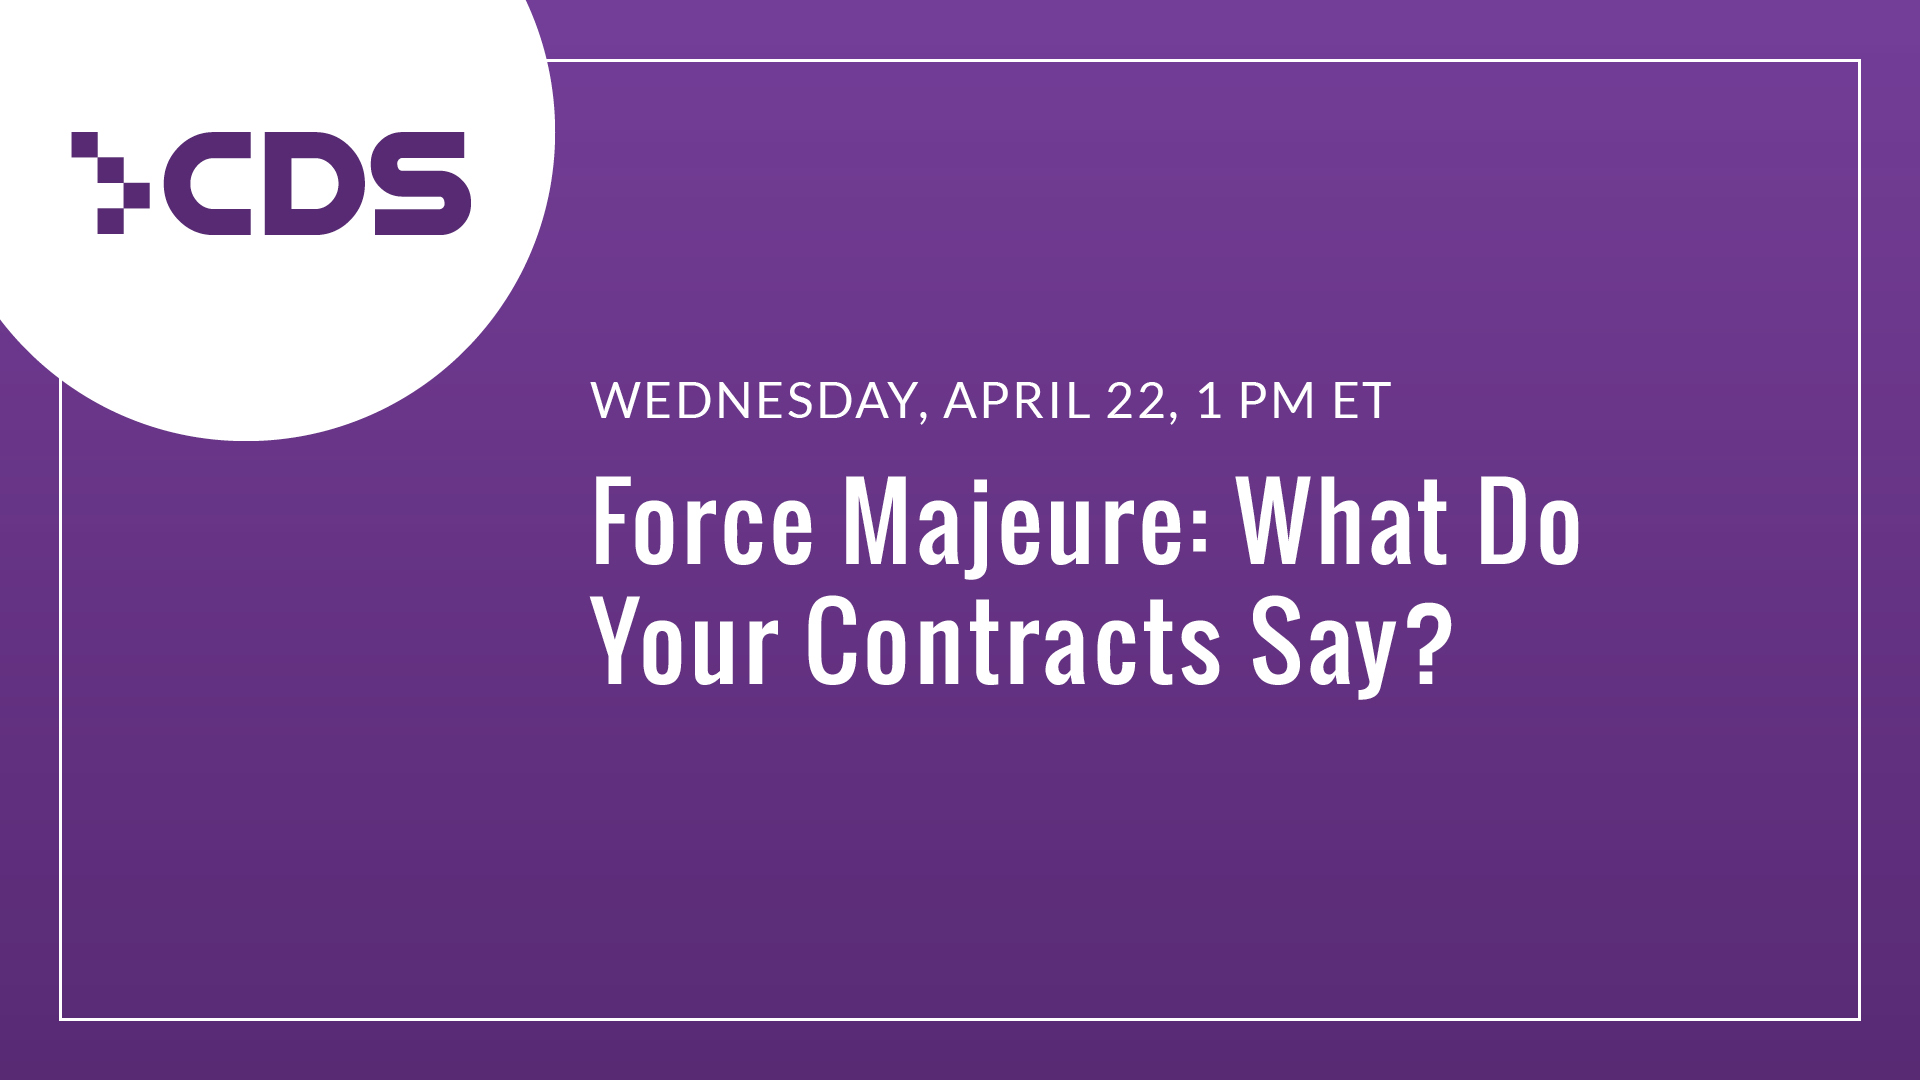 Force Majeure: What Do Your Contracts Say?